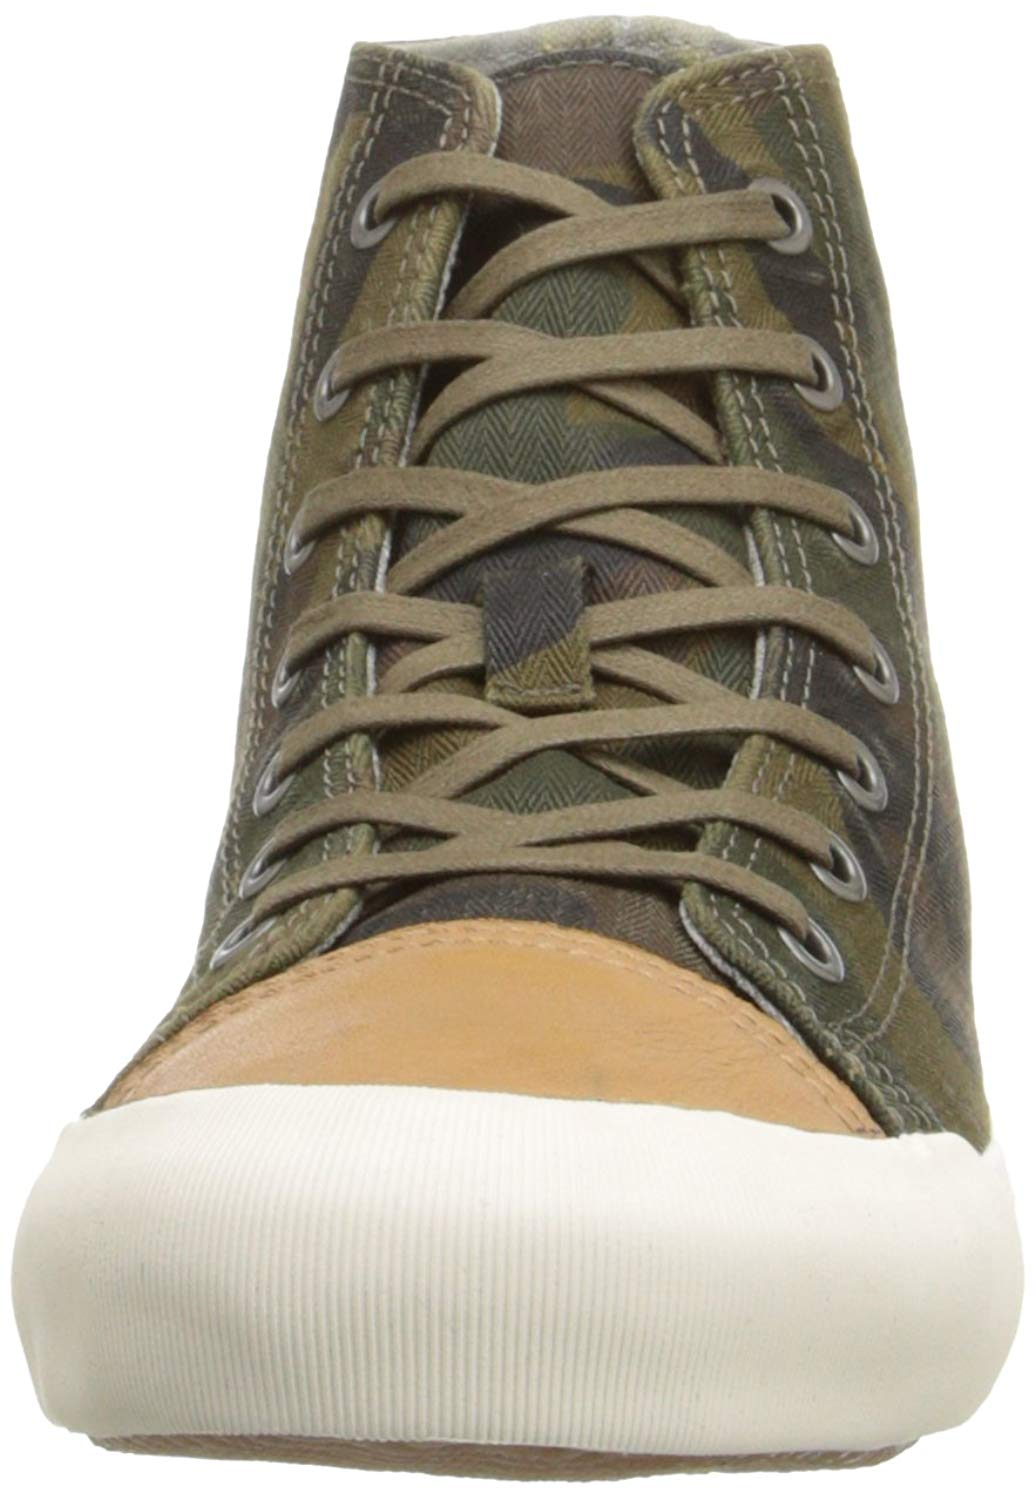 SeaVees Women's 08/61 Army Issue High Mojave Fashion, Olive Camouflage, Size 5.0